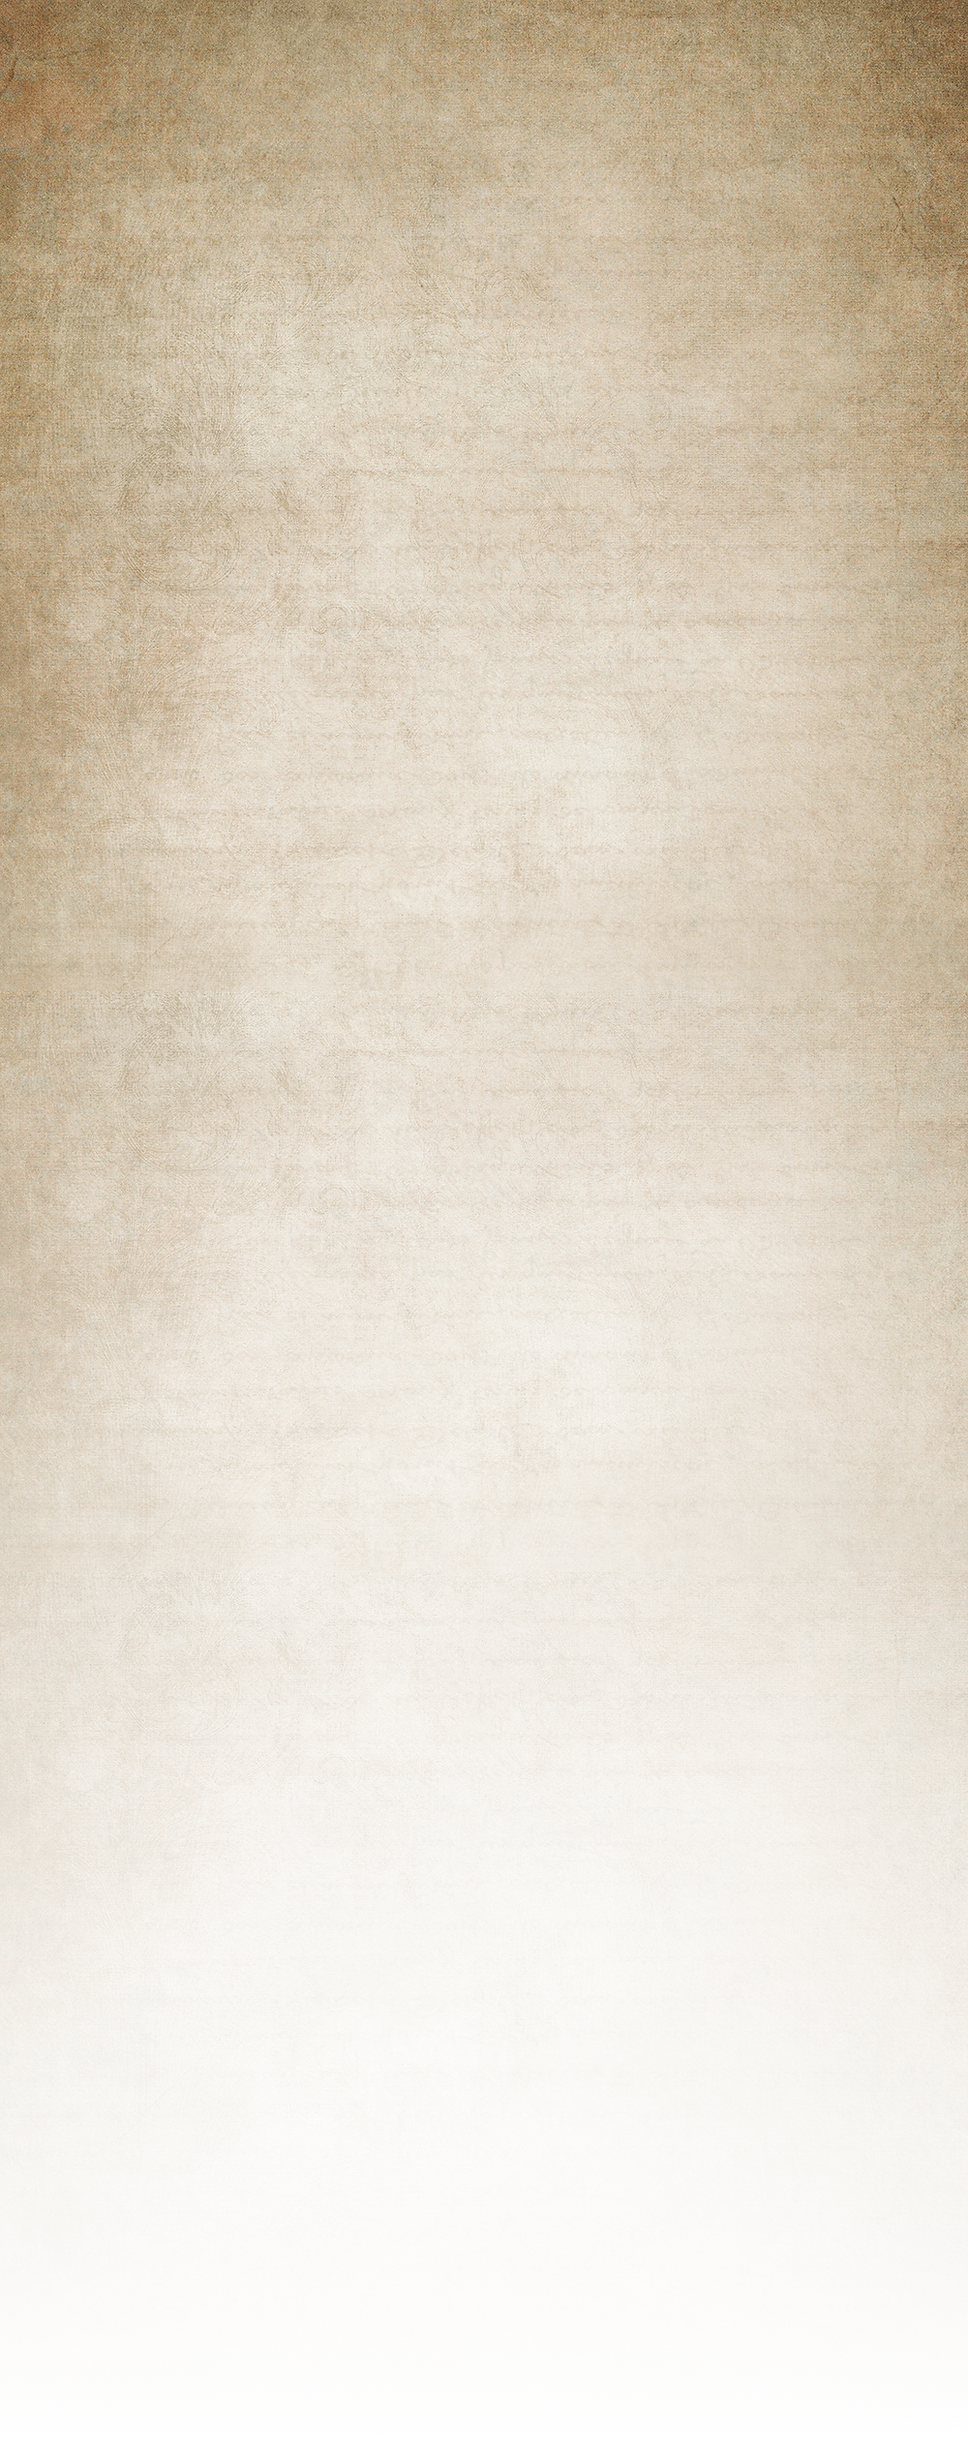 Web Background_transparent.png